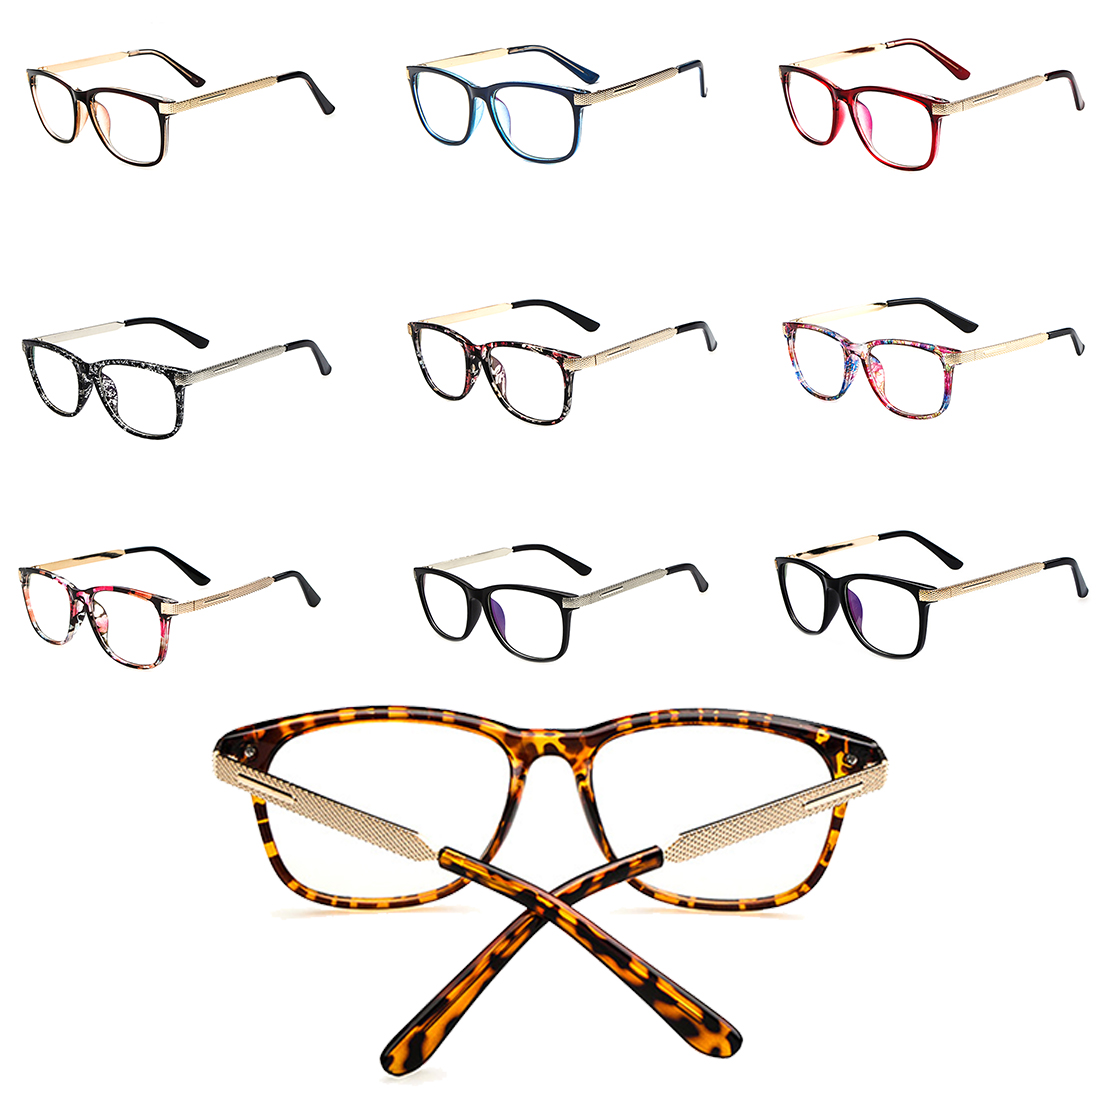 5b3cf2cf80f 100% Real Titanium Rimless Prescription Round Glasses Frame Women Classic  Eyeglasses Myopia Optical Oculos De Grau Gafas New